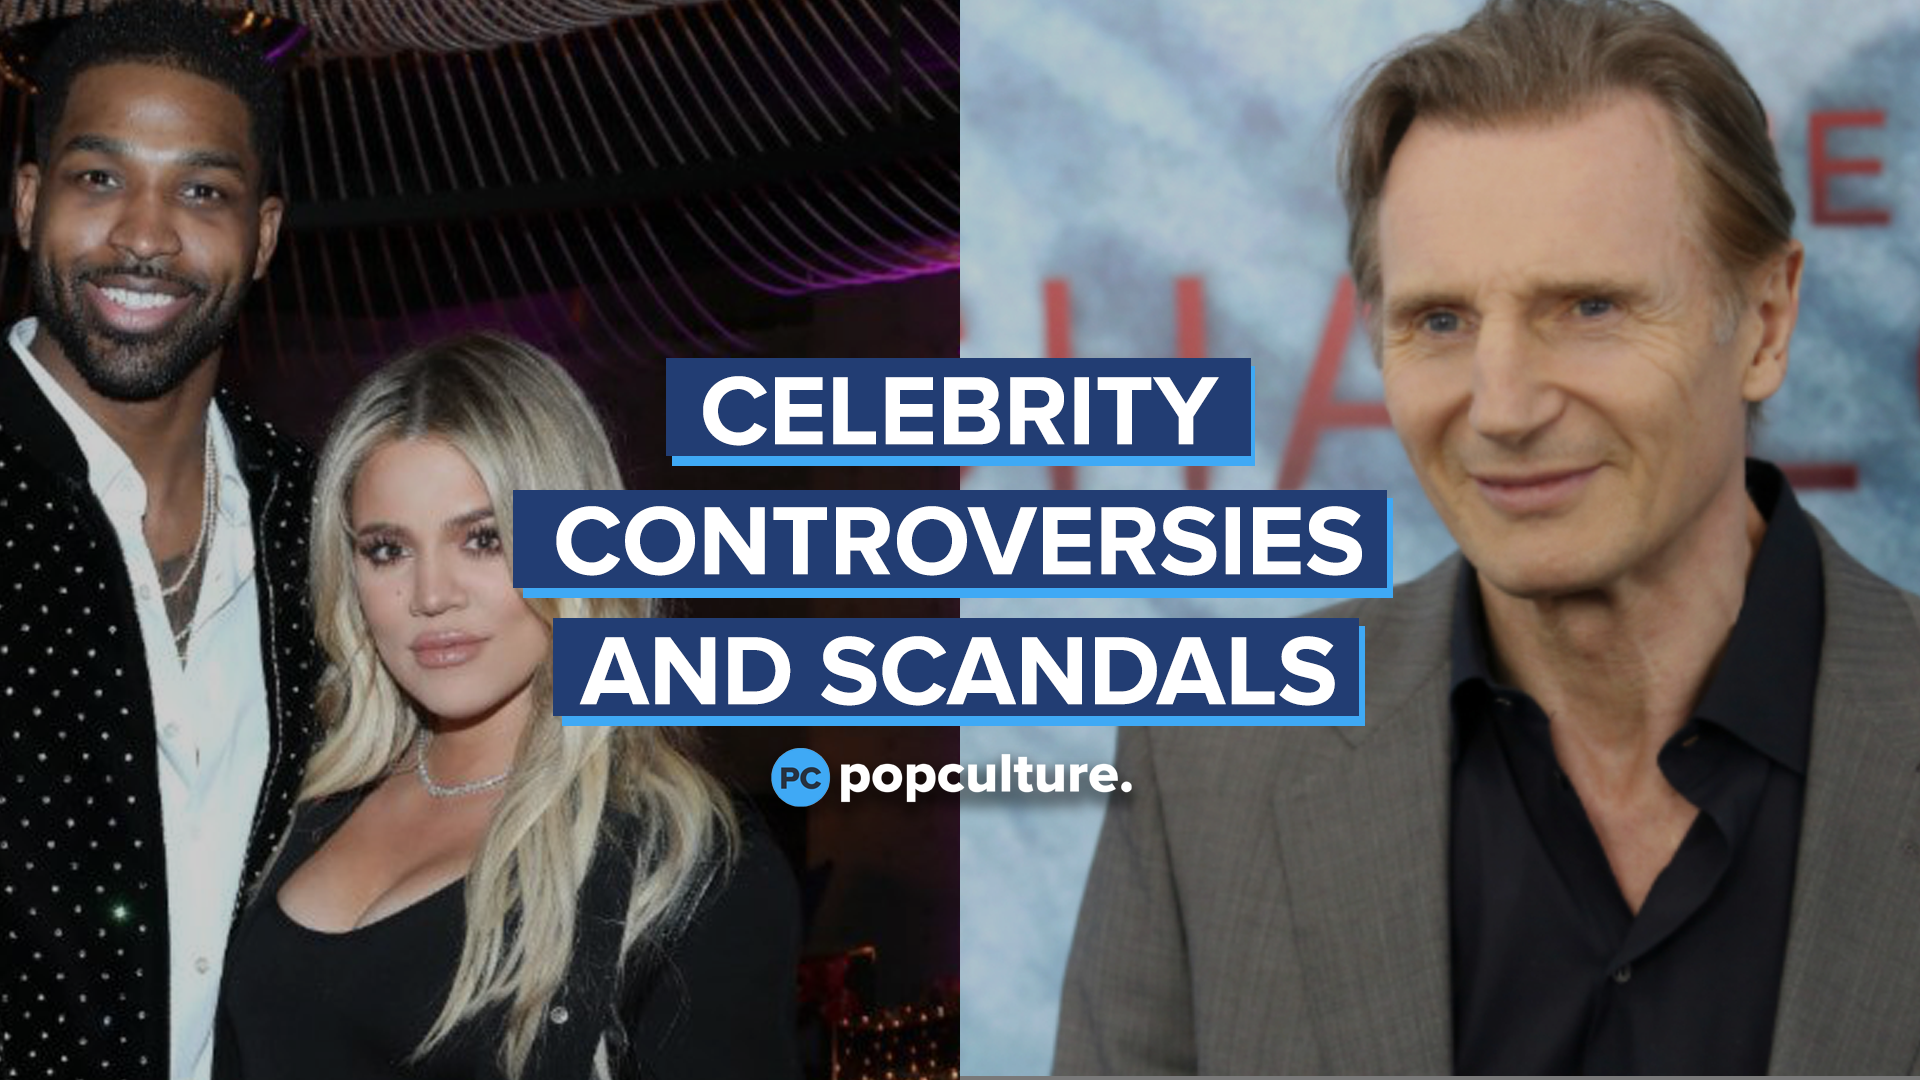 Celebrity Controversies and Scandals screen capture